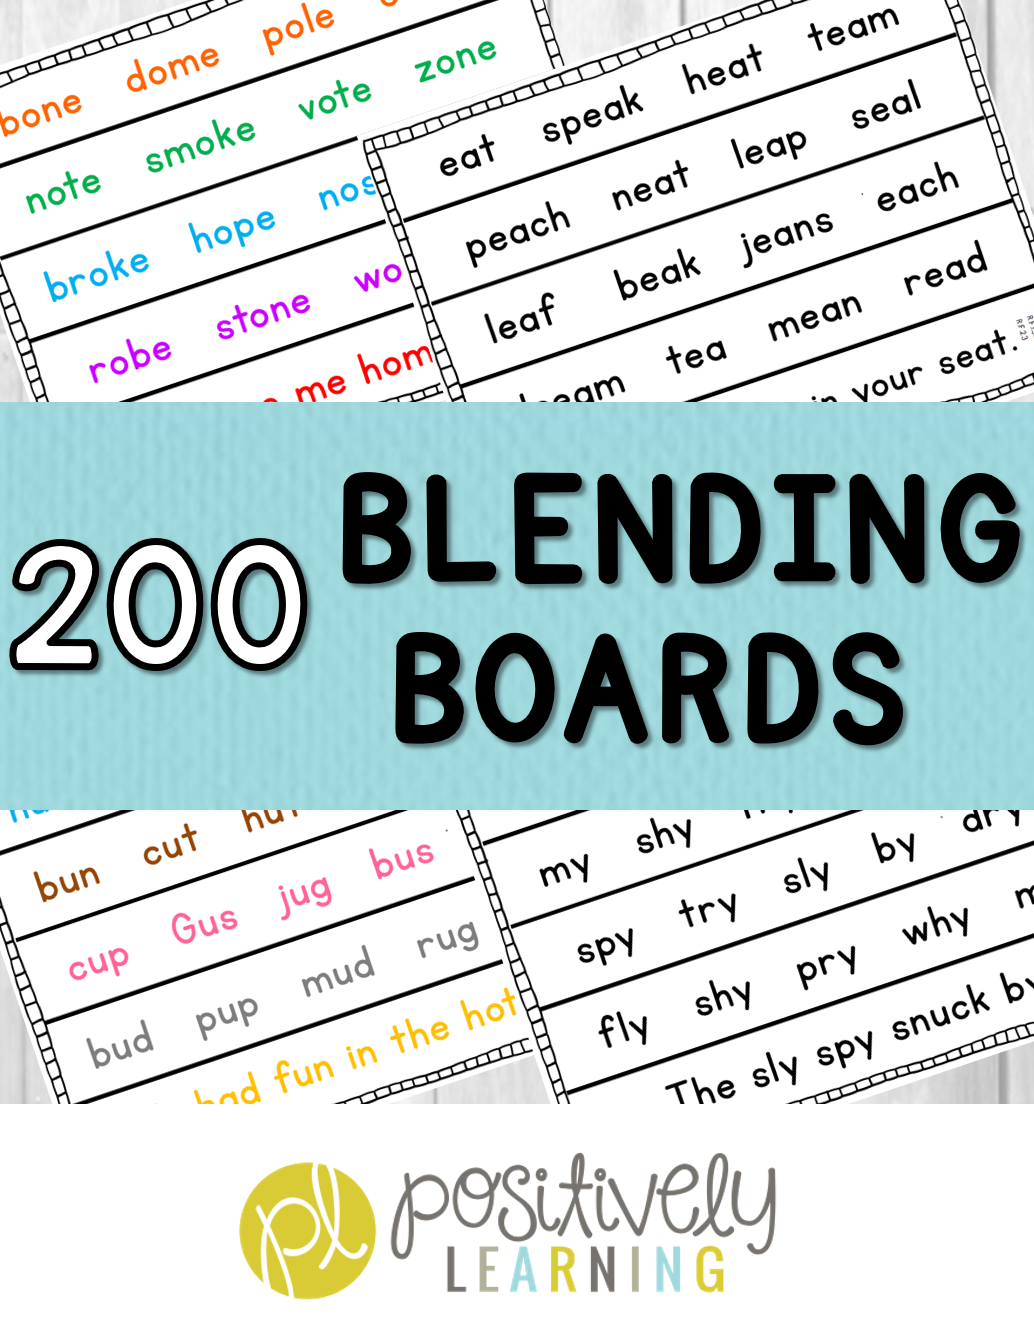 200 Blending Boards for phonics fluency! Follows K-2 Phonics scope and sequence. From Positively Learning